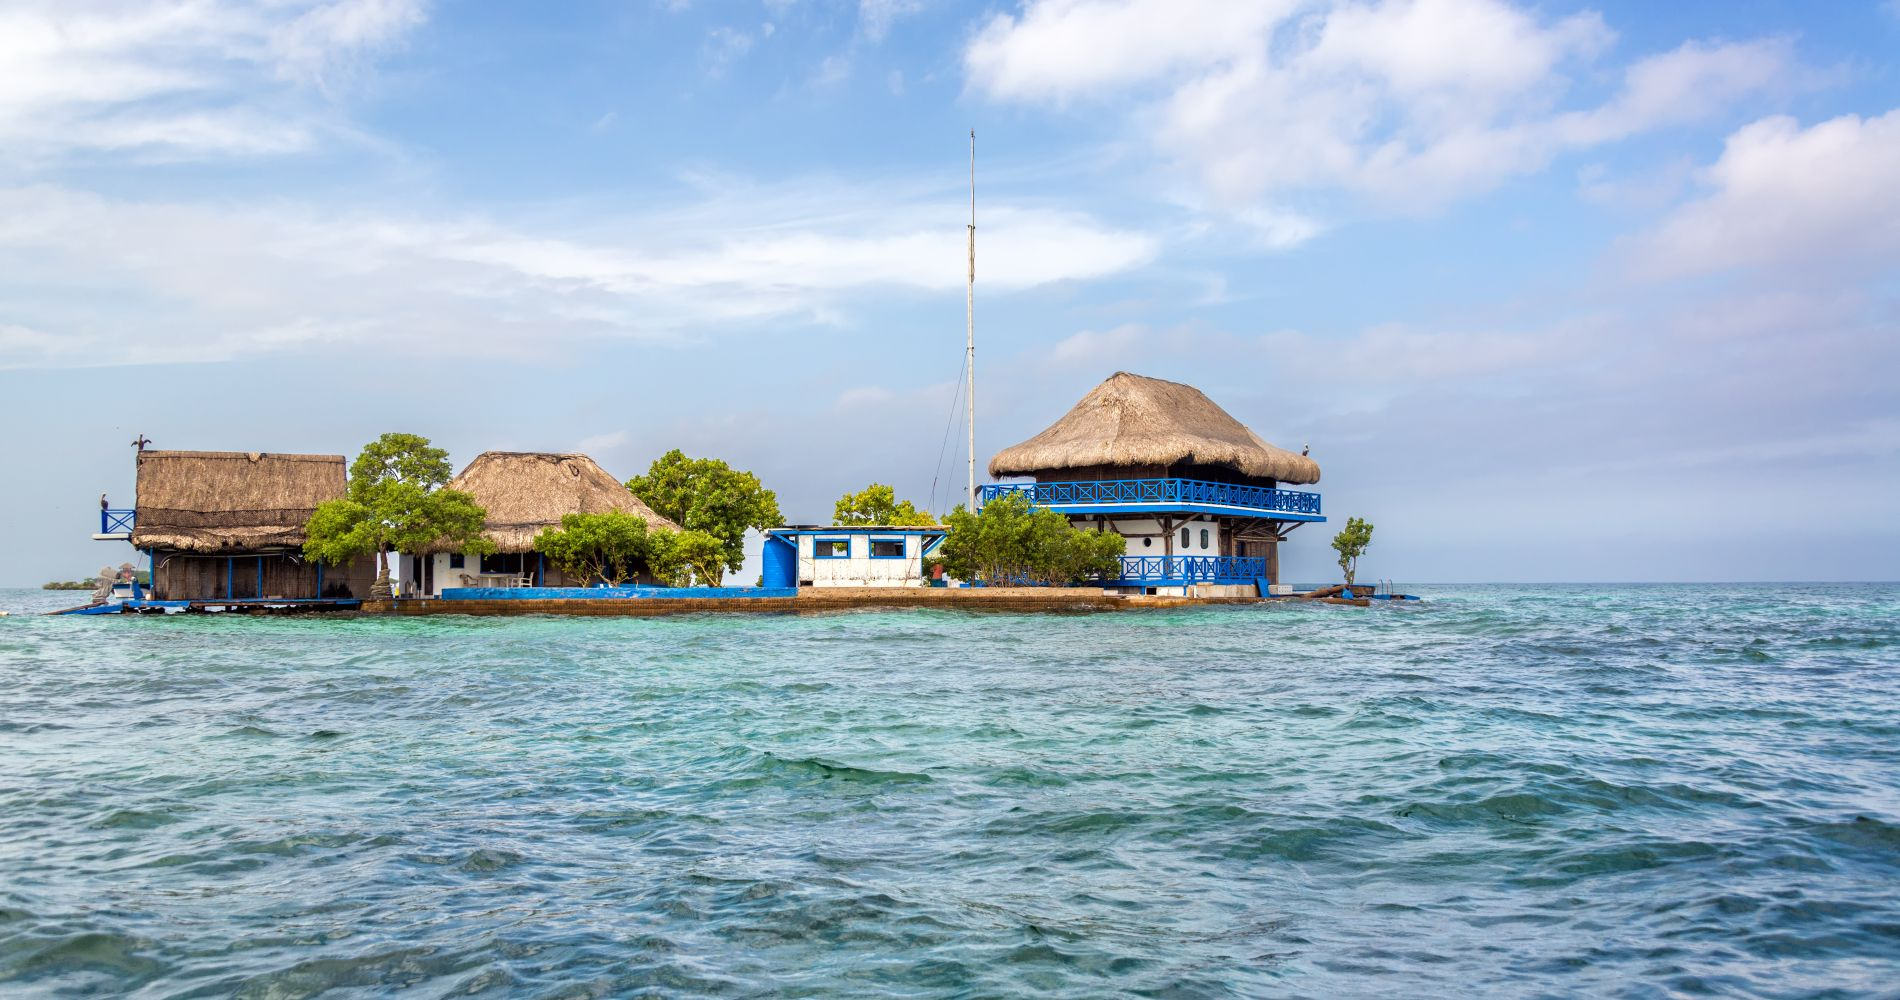 Tour of the Rosario Islands from Cartagena